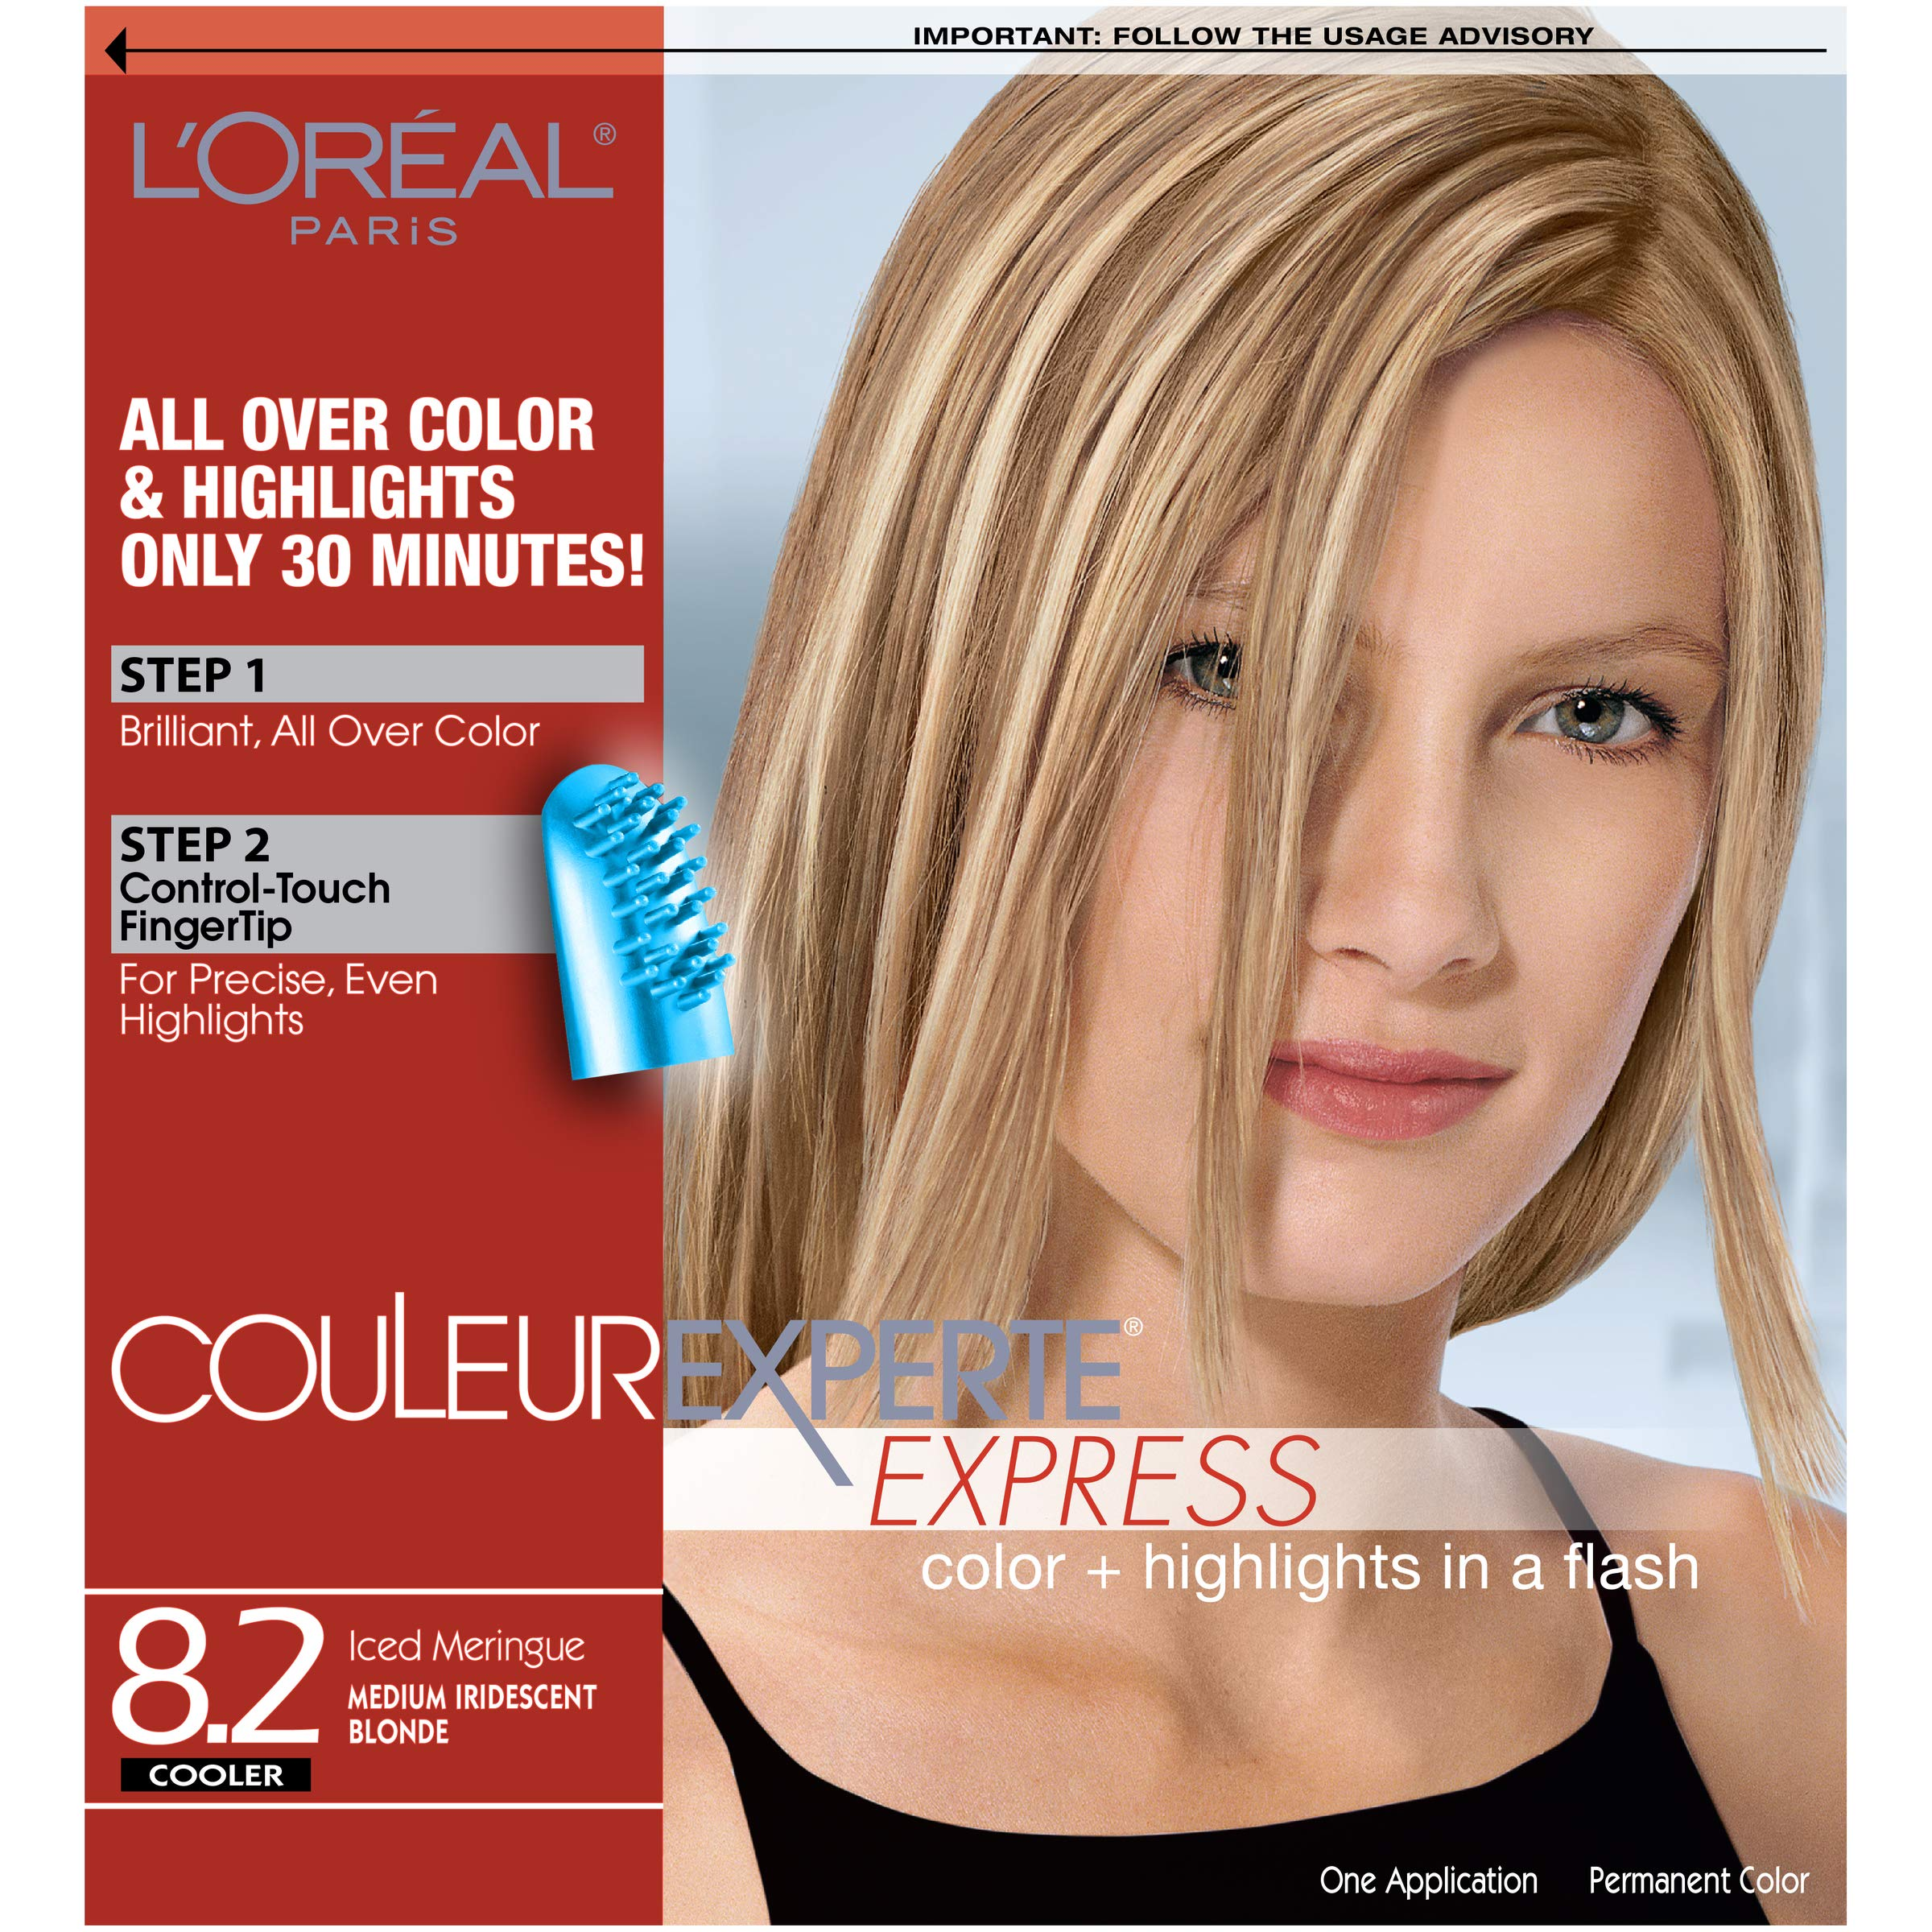 L'Oreal Paris Couleur Experte Color + Highlights in a Flash, Medium Iridescent Blonde - Ice by L'Oreal Paris